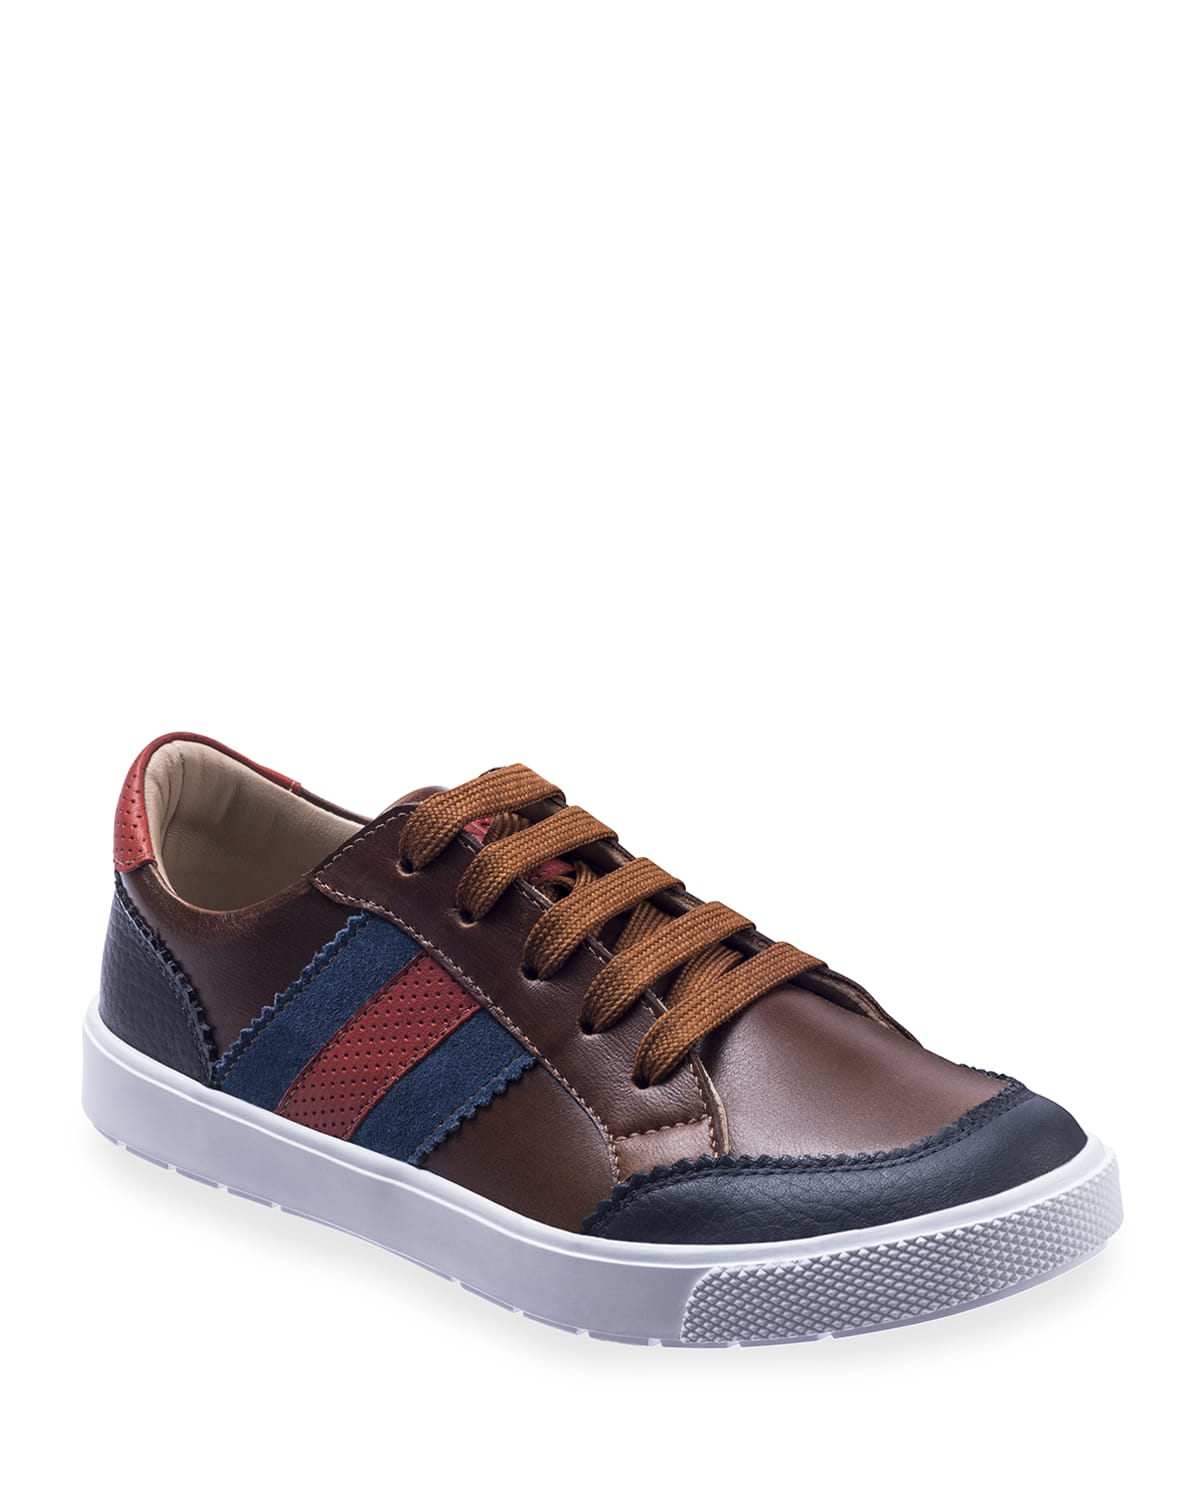 Boy's All American Colorblock Leather Sneakers